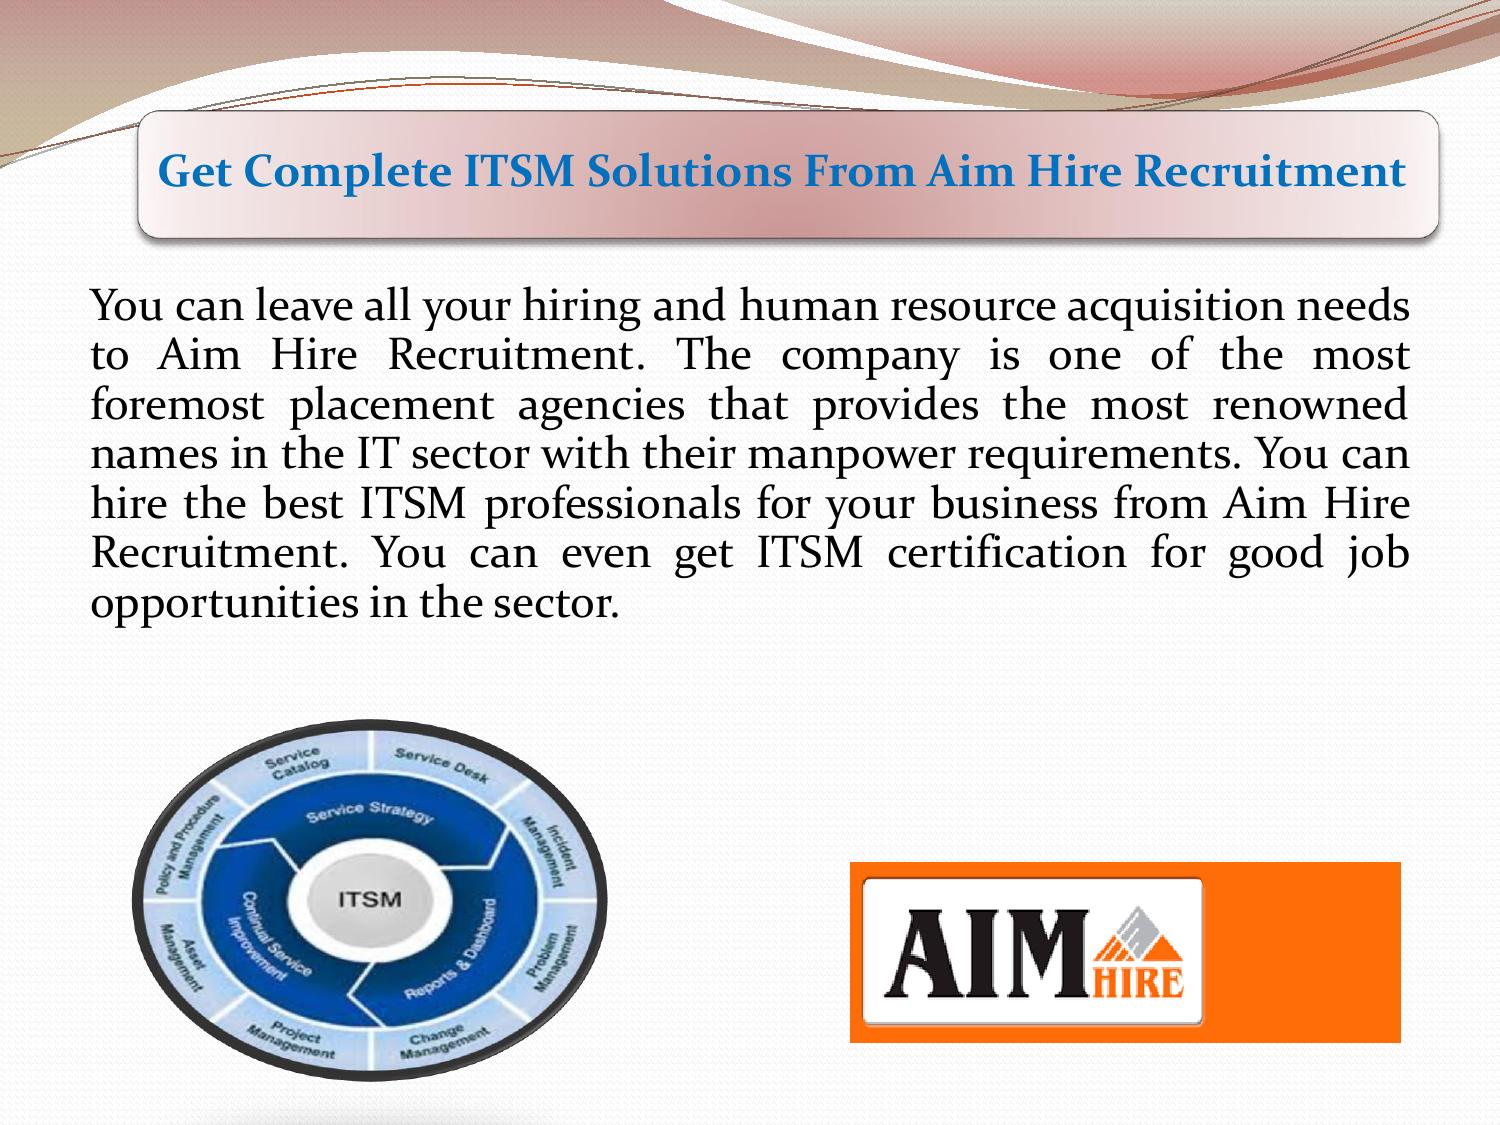 Get complete itsm solutions from aim hire recruitment by get complete itsm solutions from aim hire recruitment by jaksonwilliam issuu xflitez Choice Image